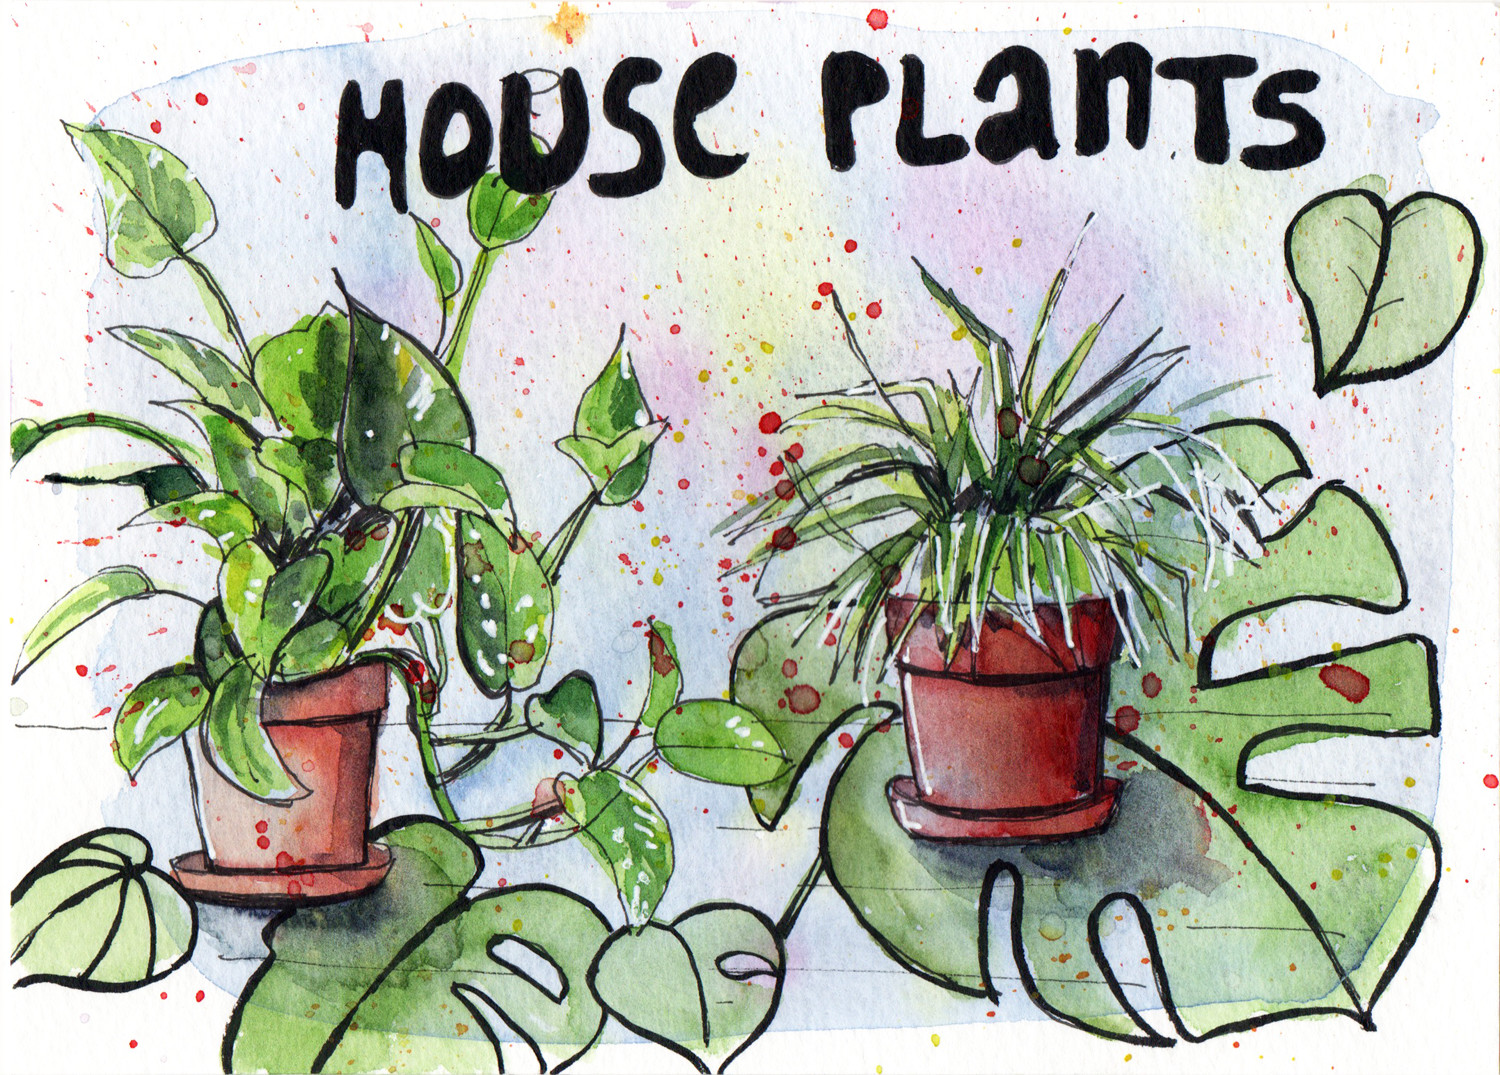 Daily Drawings House Plants in Pen and Watercolour by Sophie Peanut